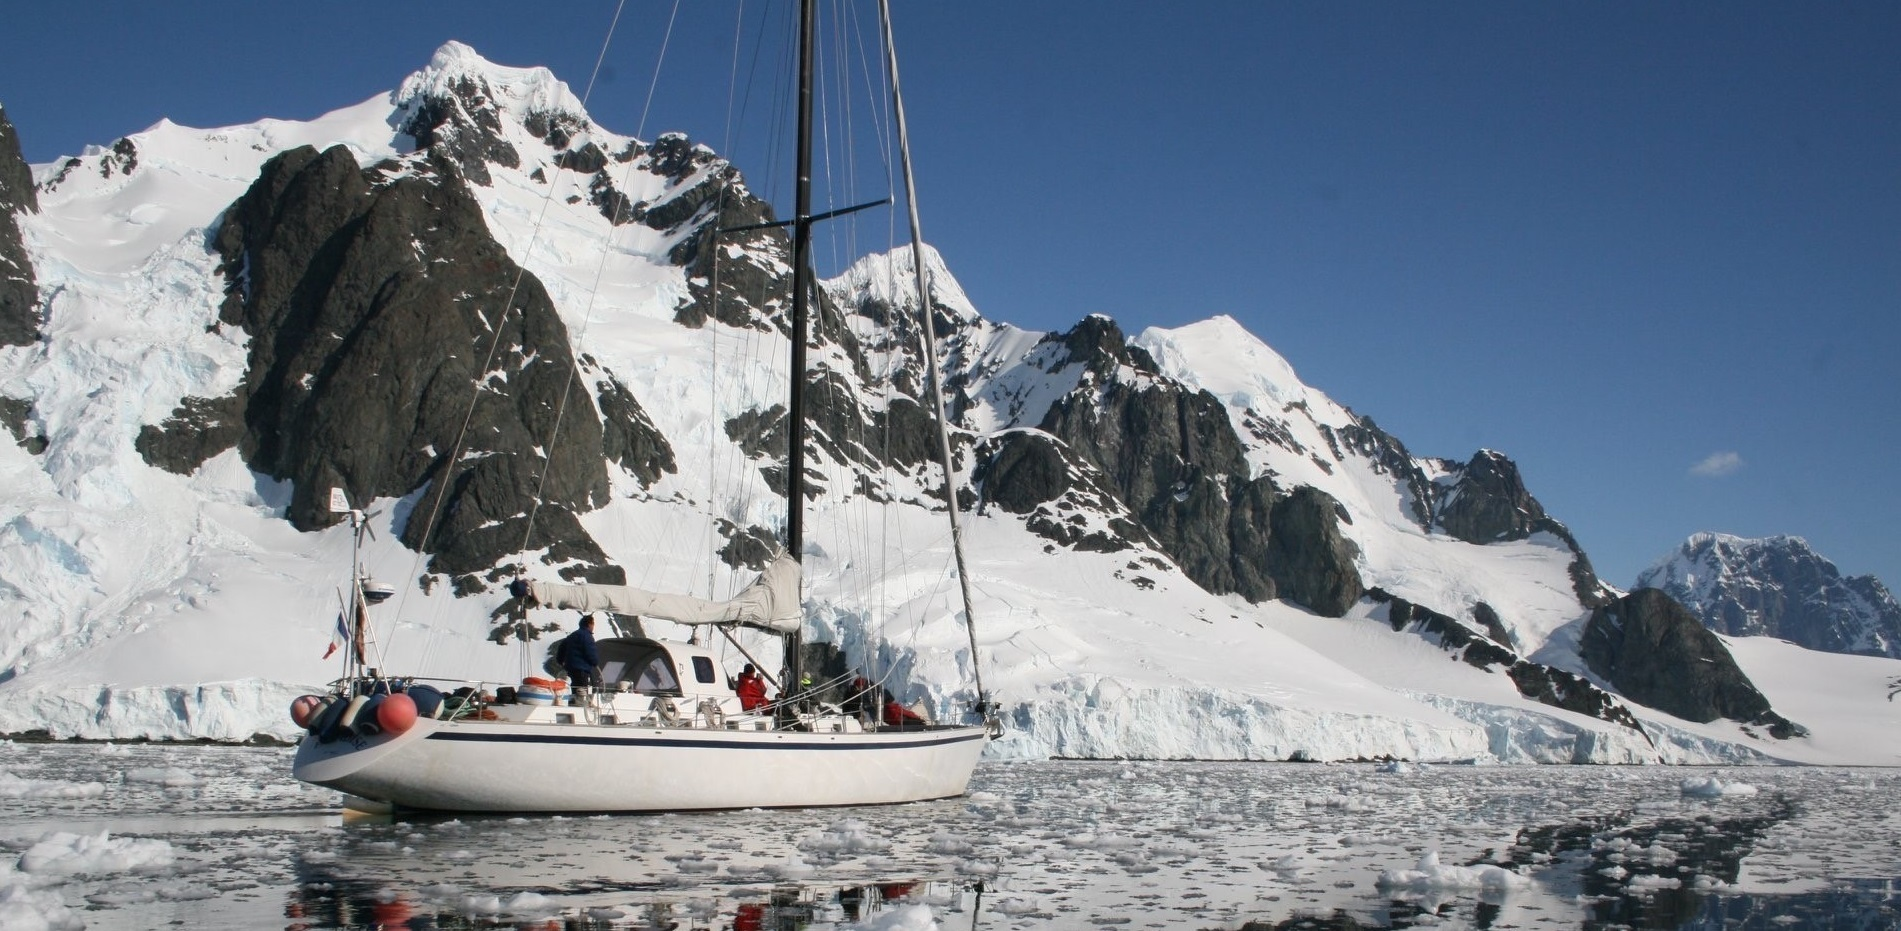 Owen Clarke Design have a history of high latitude polar and adventure sailing reaching as far back as 2003.  The brokerage and sale of aluminium and lifting keel explorer and expedition yachts parallels our interest in the geography, sailing and design of sailboats for the Antarctic and Arctic regions.